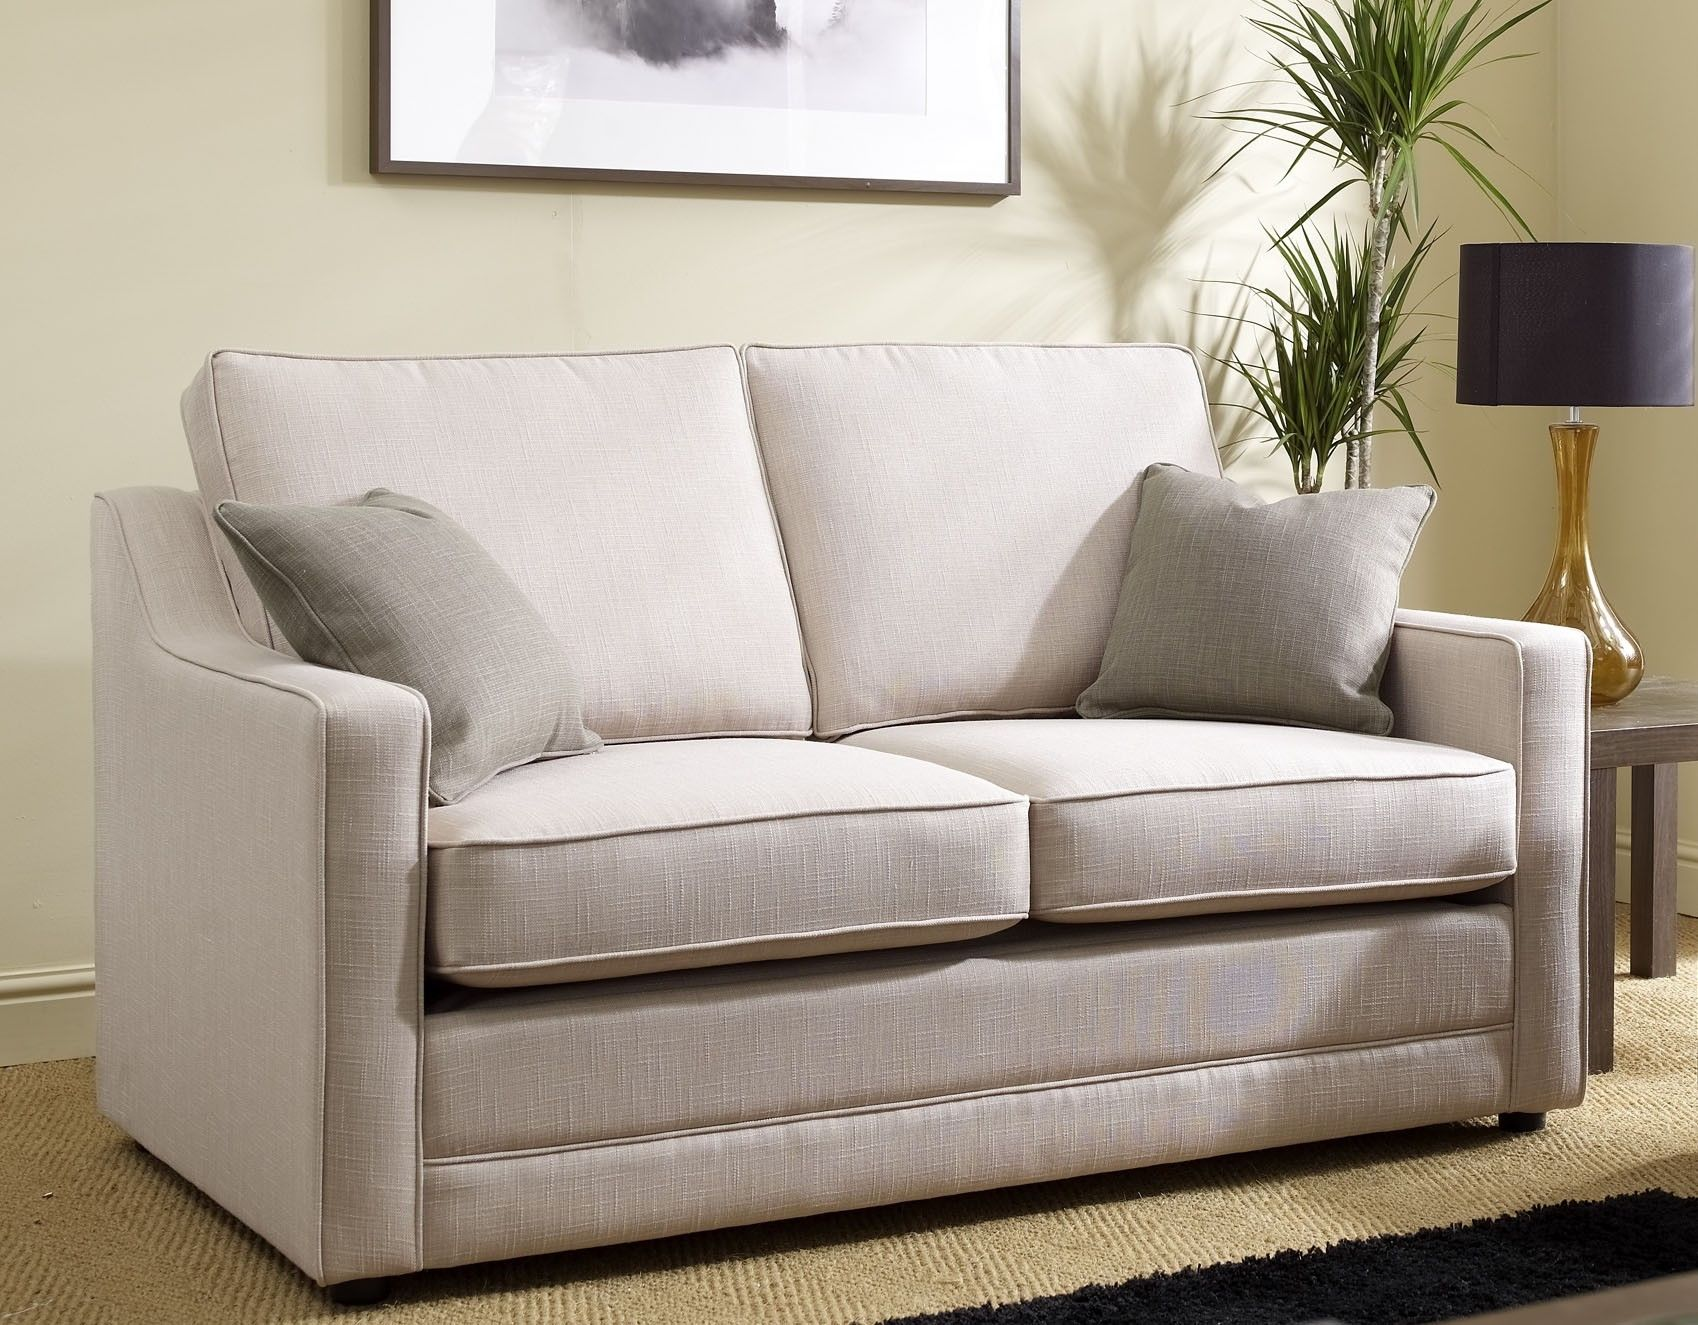 wonderful compact sofa bed portrait-Fresh Compact sofa Bed Décor